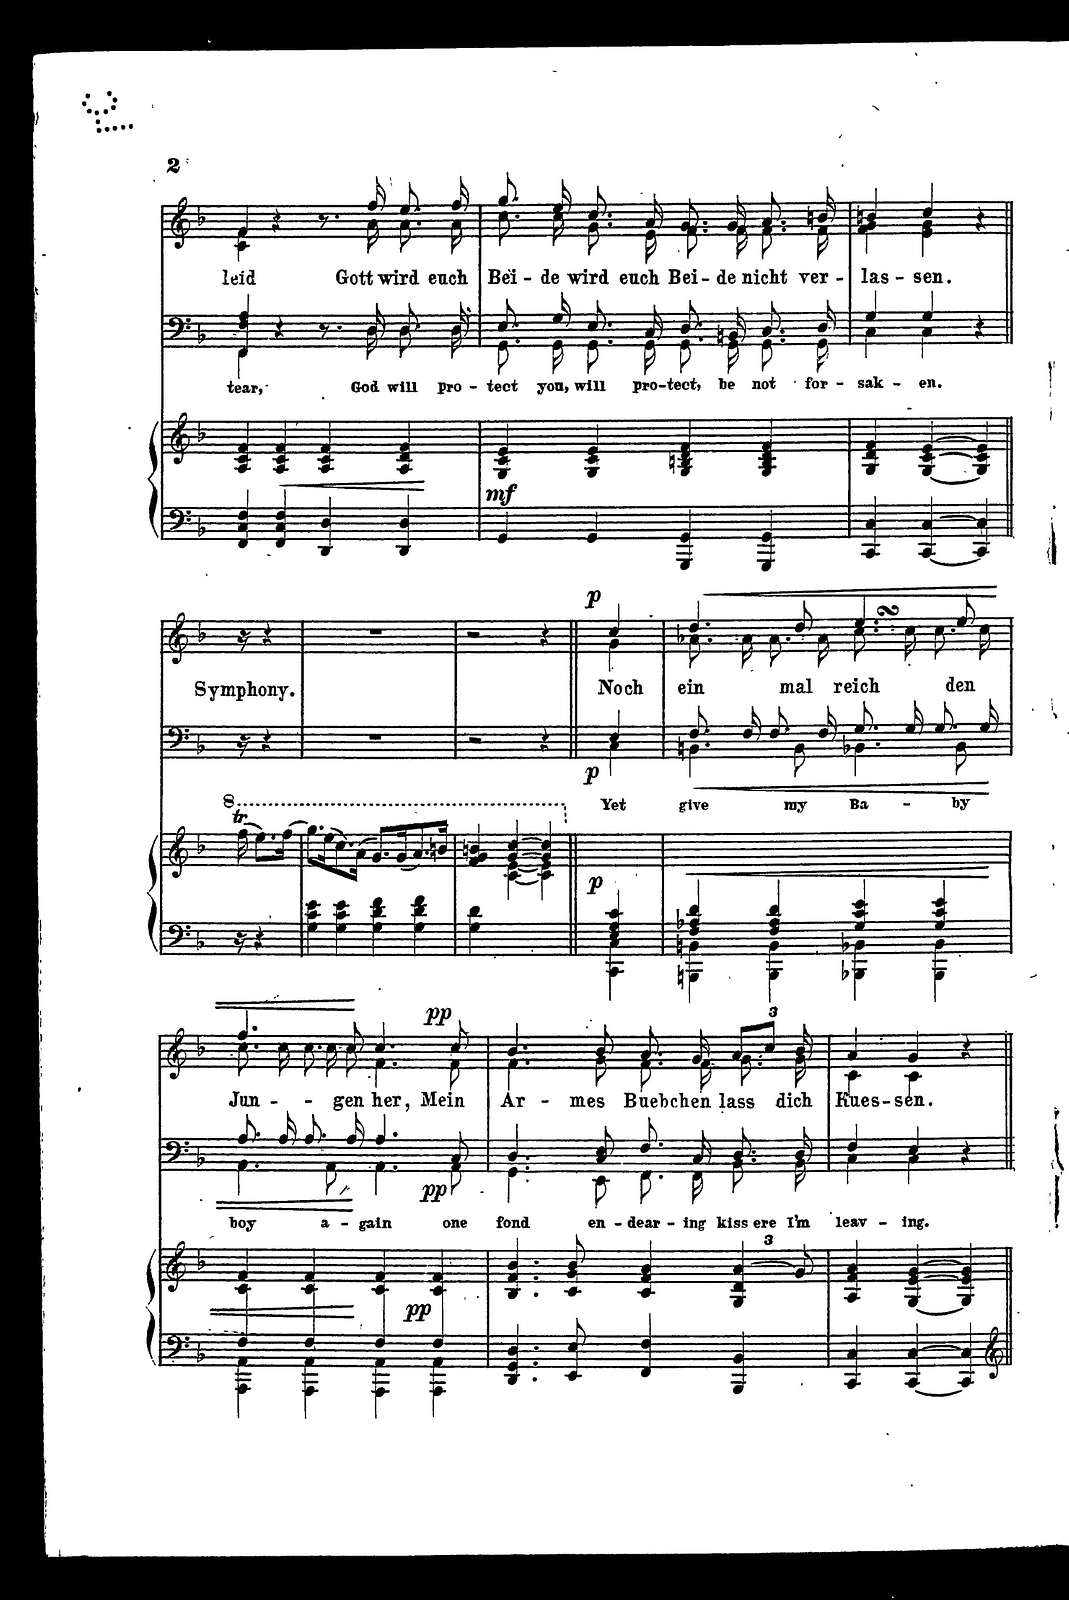 """Landwehrmann's """"abschieds"""" lied - The soldier's parting song"""